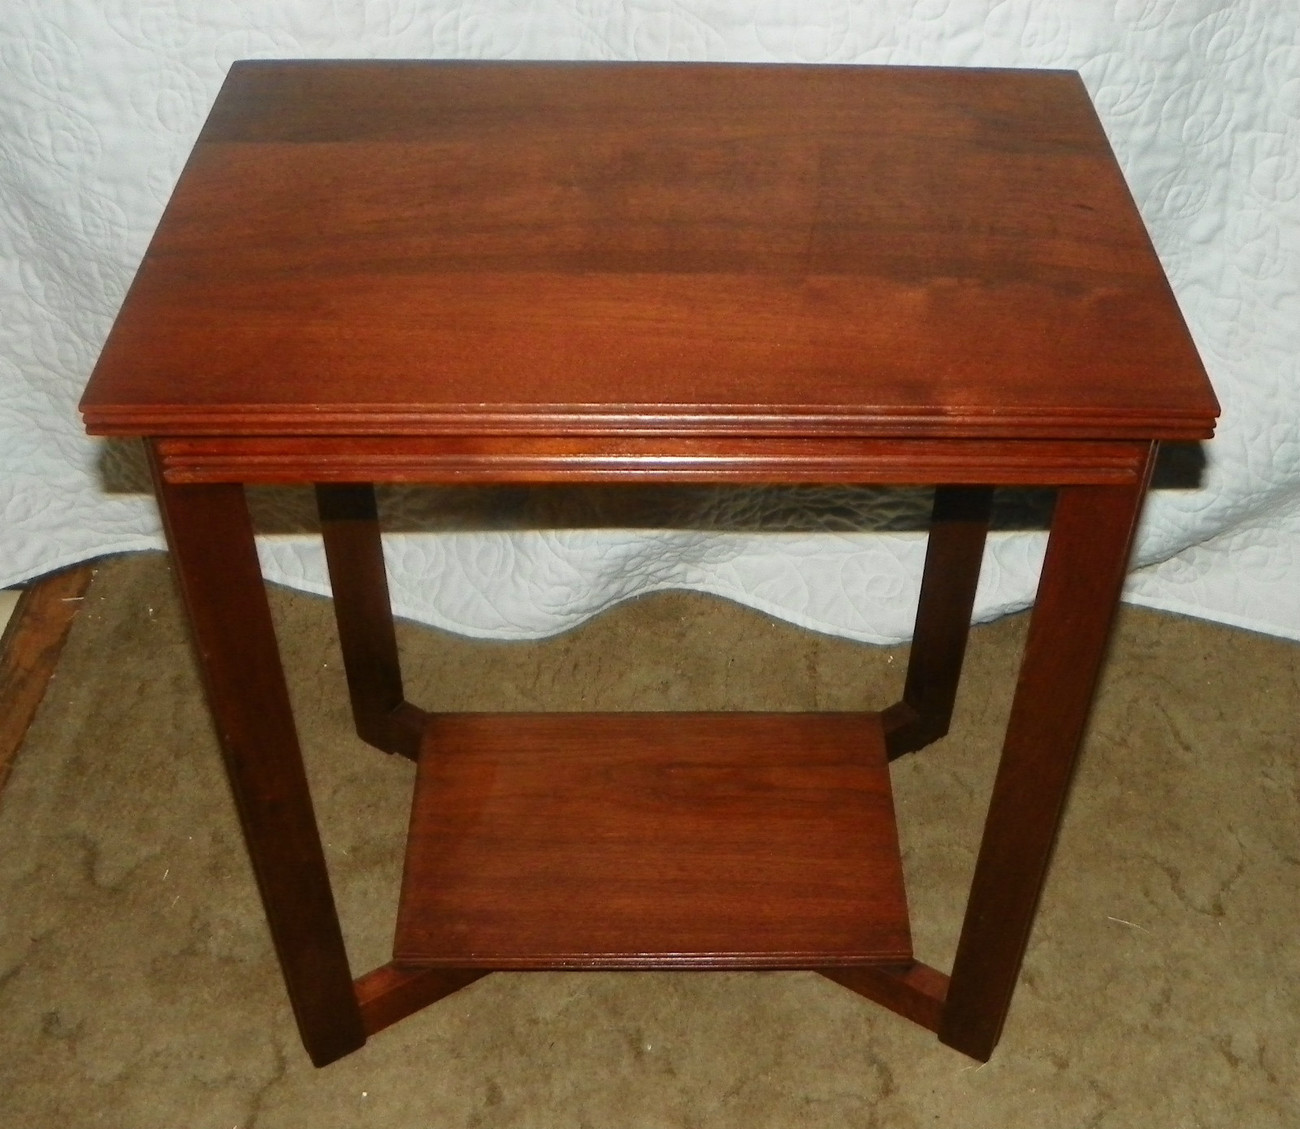 Primary image for Solid Walnut End Table / Entry Table  (T199)